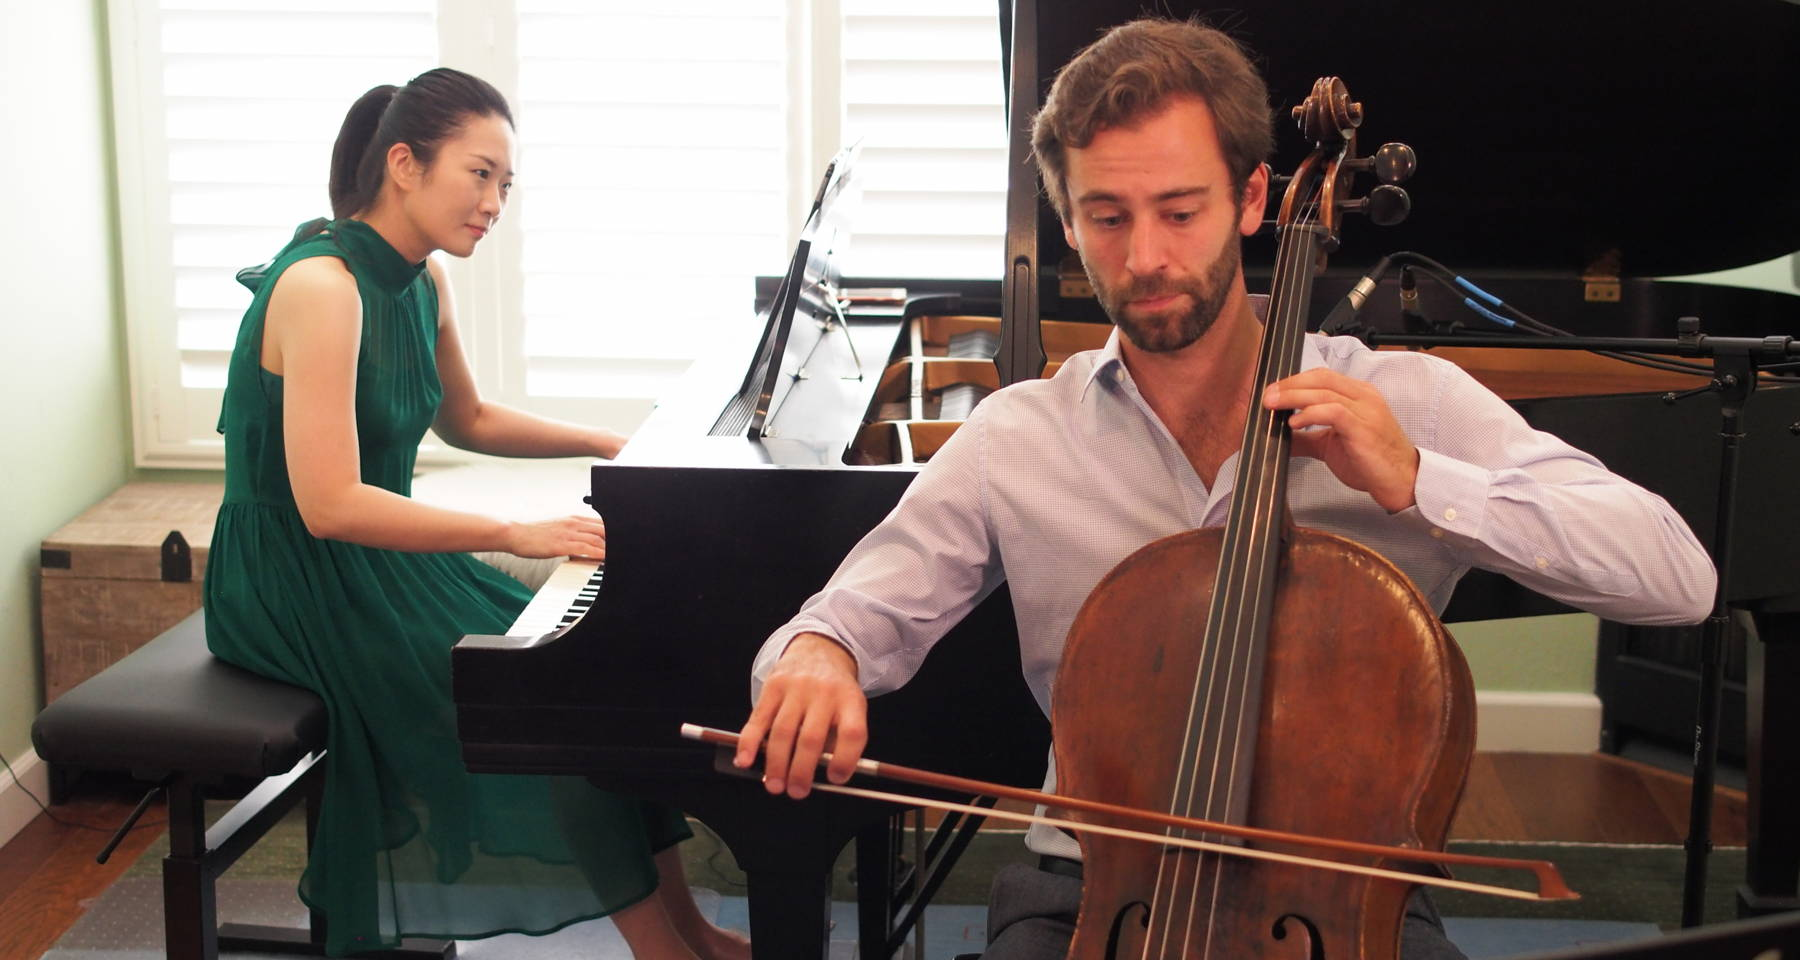 Piano and Cello - What Else Do You Need?